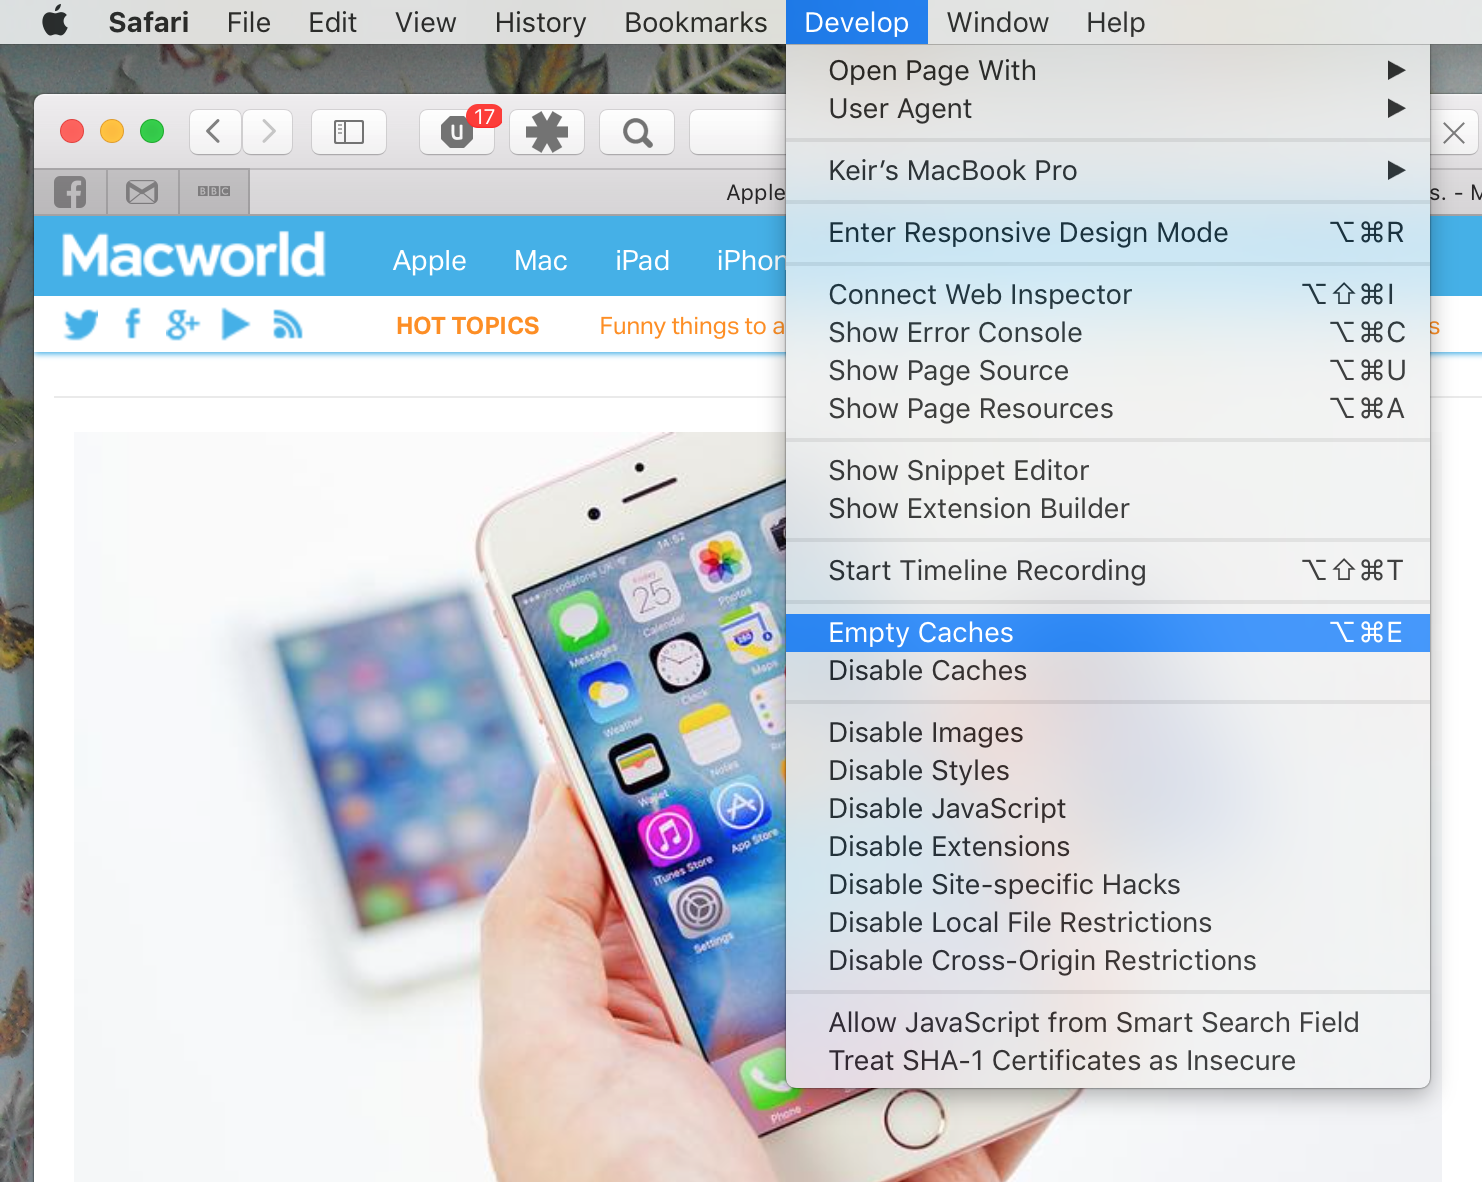 How to clear Safari's cache and history on Mac: Empty Caches